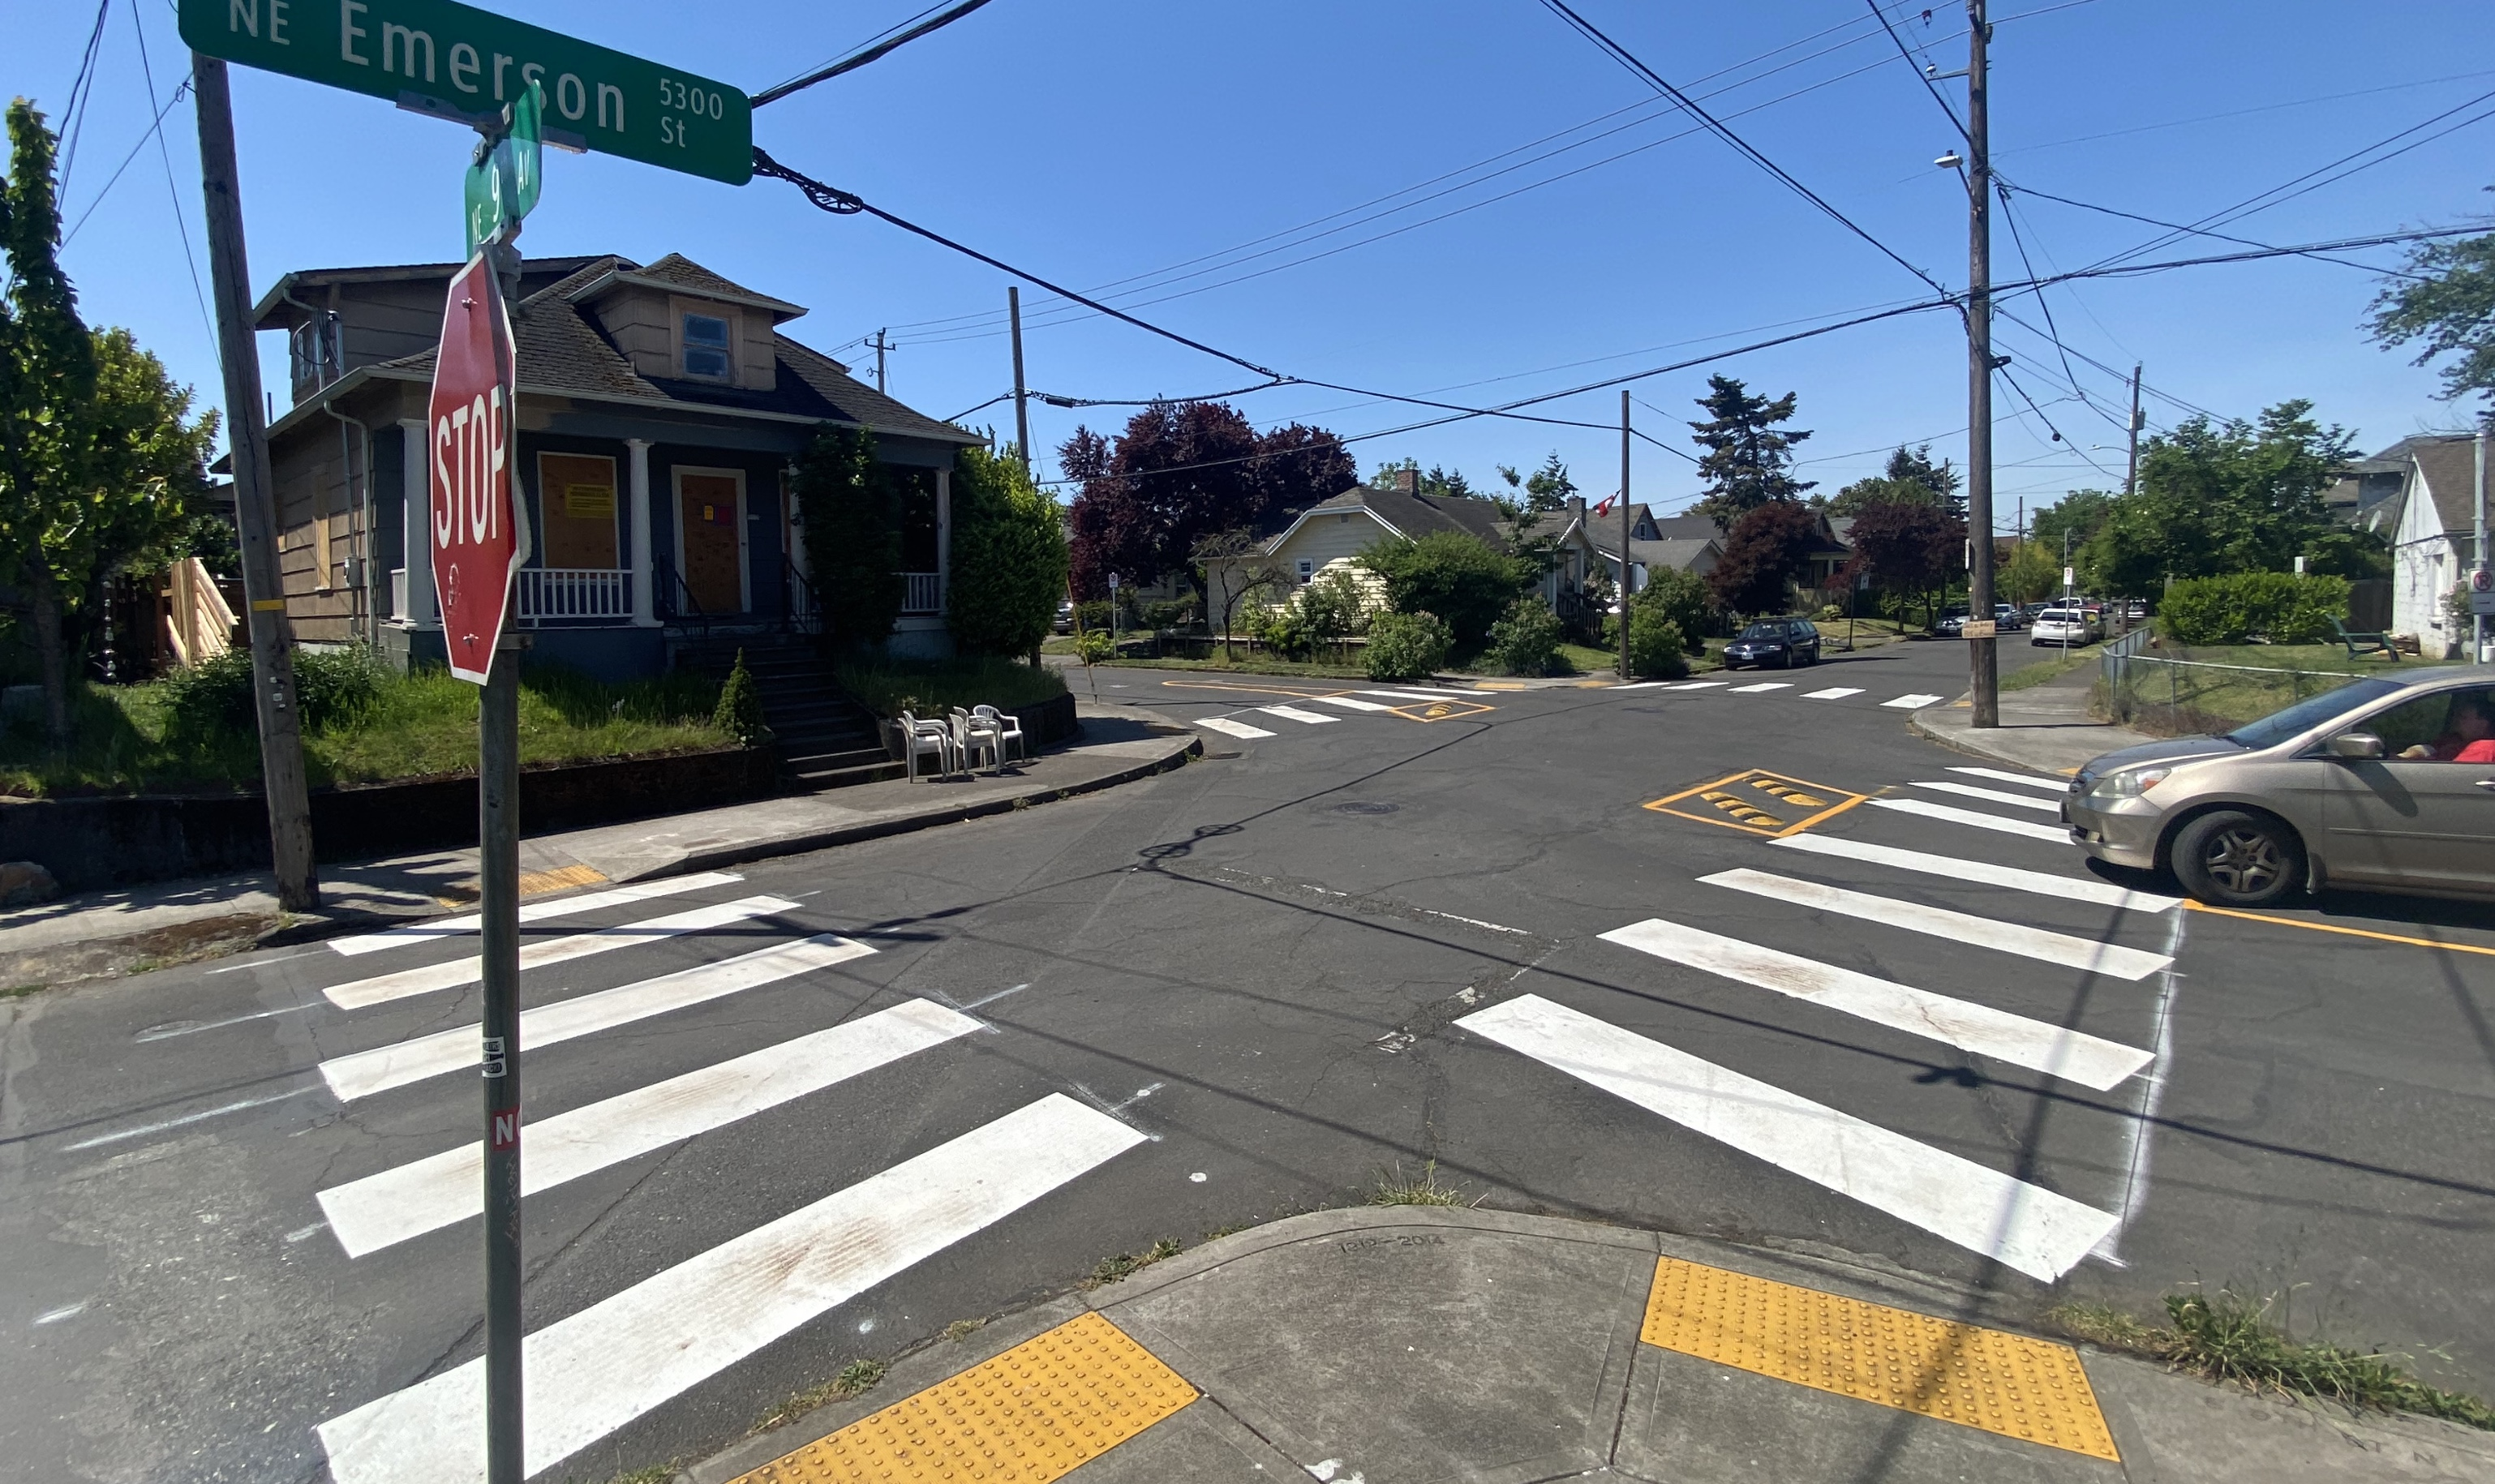 First look: New intersection treatment at NE 9th and Webster